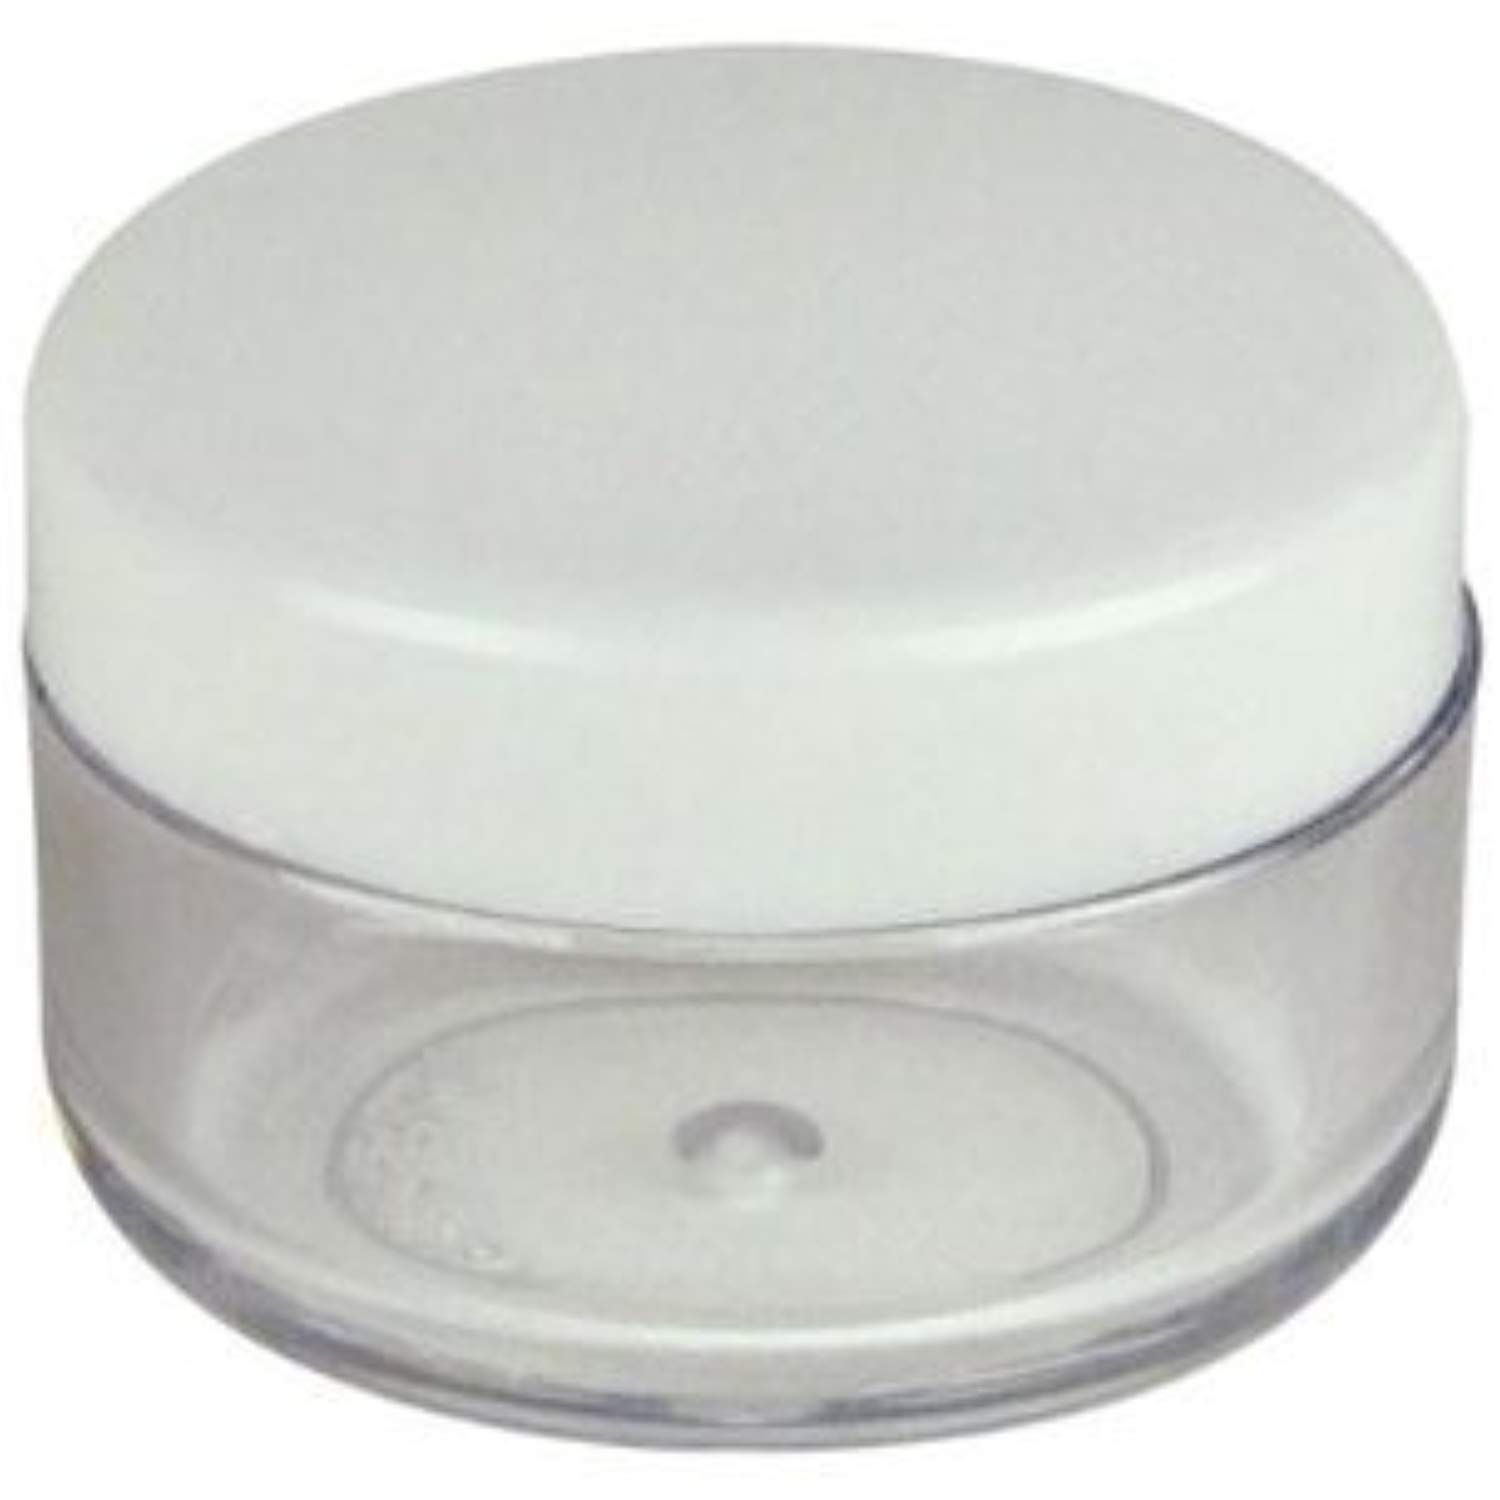 Premium Quality Bulk Order Of 500 Pieces New Empty White Lid Plastic Cosmetic Containers 5 Gram Size Jars P Cosmetic Containers Tools Accessories Eyeshadow